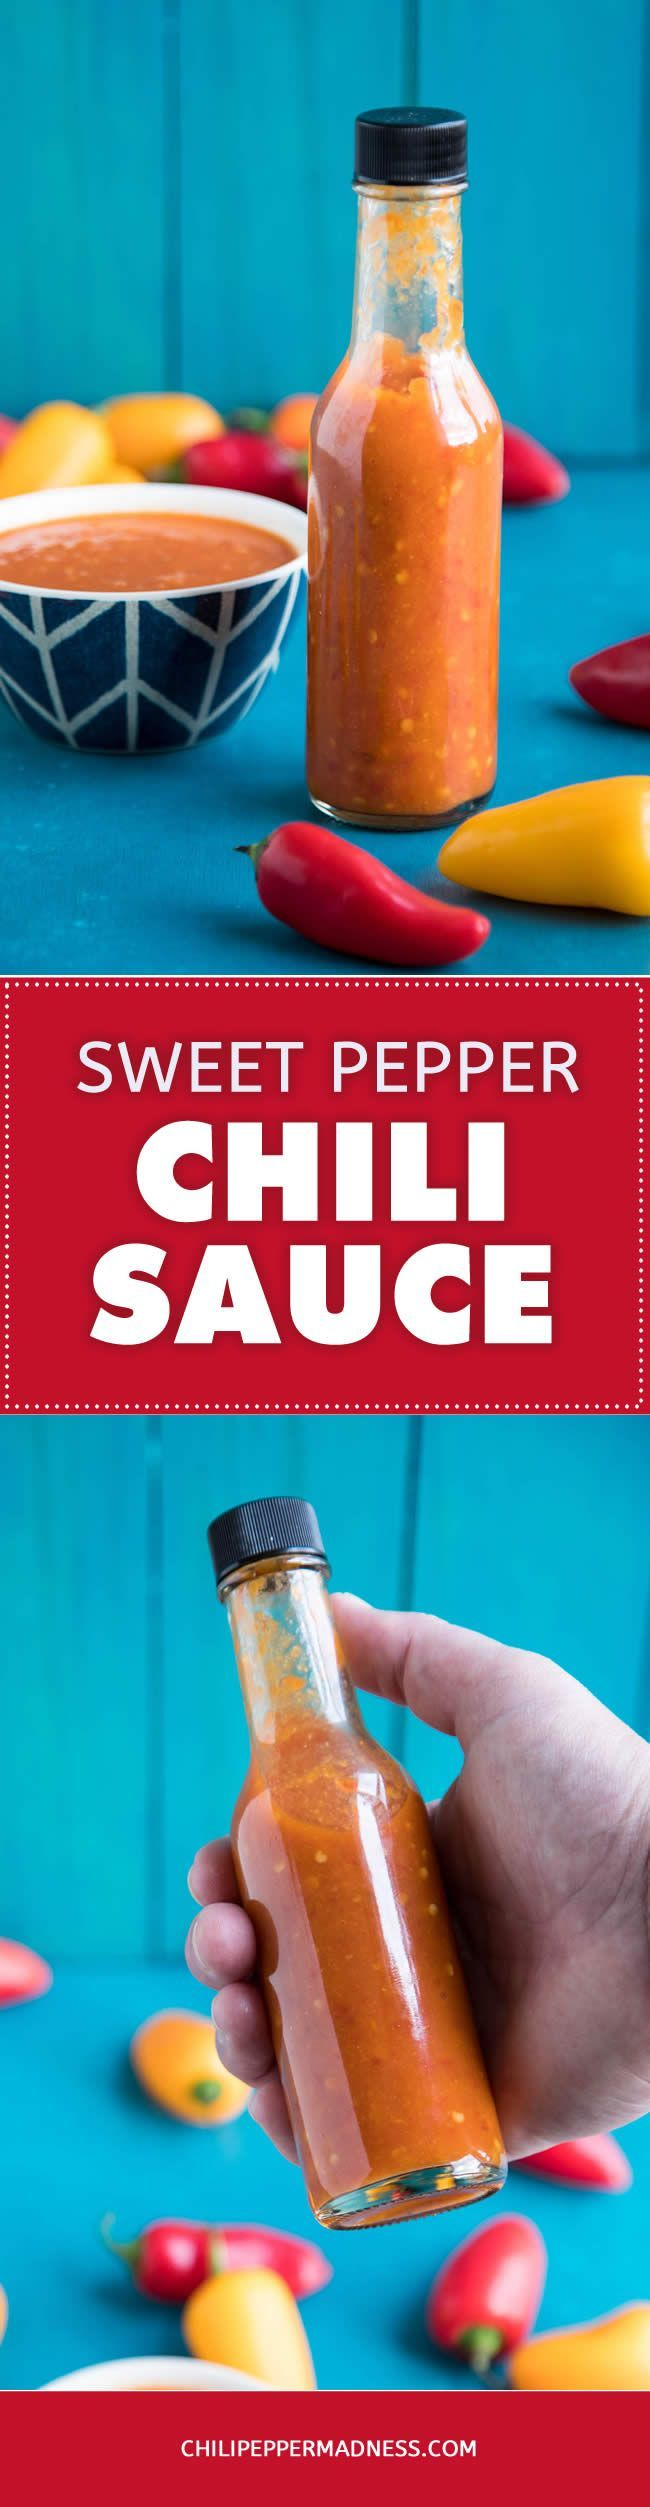 Sweet Pepper Chili Sauce - A recipe for homemade chili sauce made with fermented garden-grown sweet peppers. It's like a mild, richly flavored hot sauce. Dash it over everything!  #recipe #recipeoftheday #recipeideas #recipesharing #chilipeppemadness #spicyfood #spicylife #delish #tasty #foodblogeats #dinner #spicy #recipes #ilovecooking #chilihead #chilipeppers